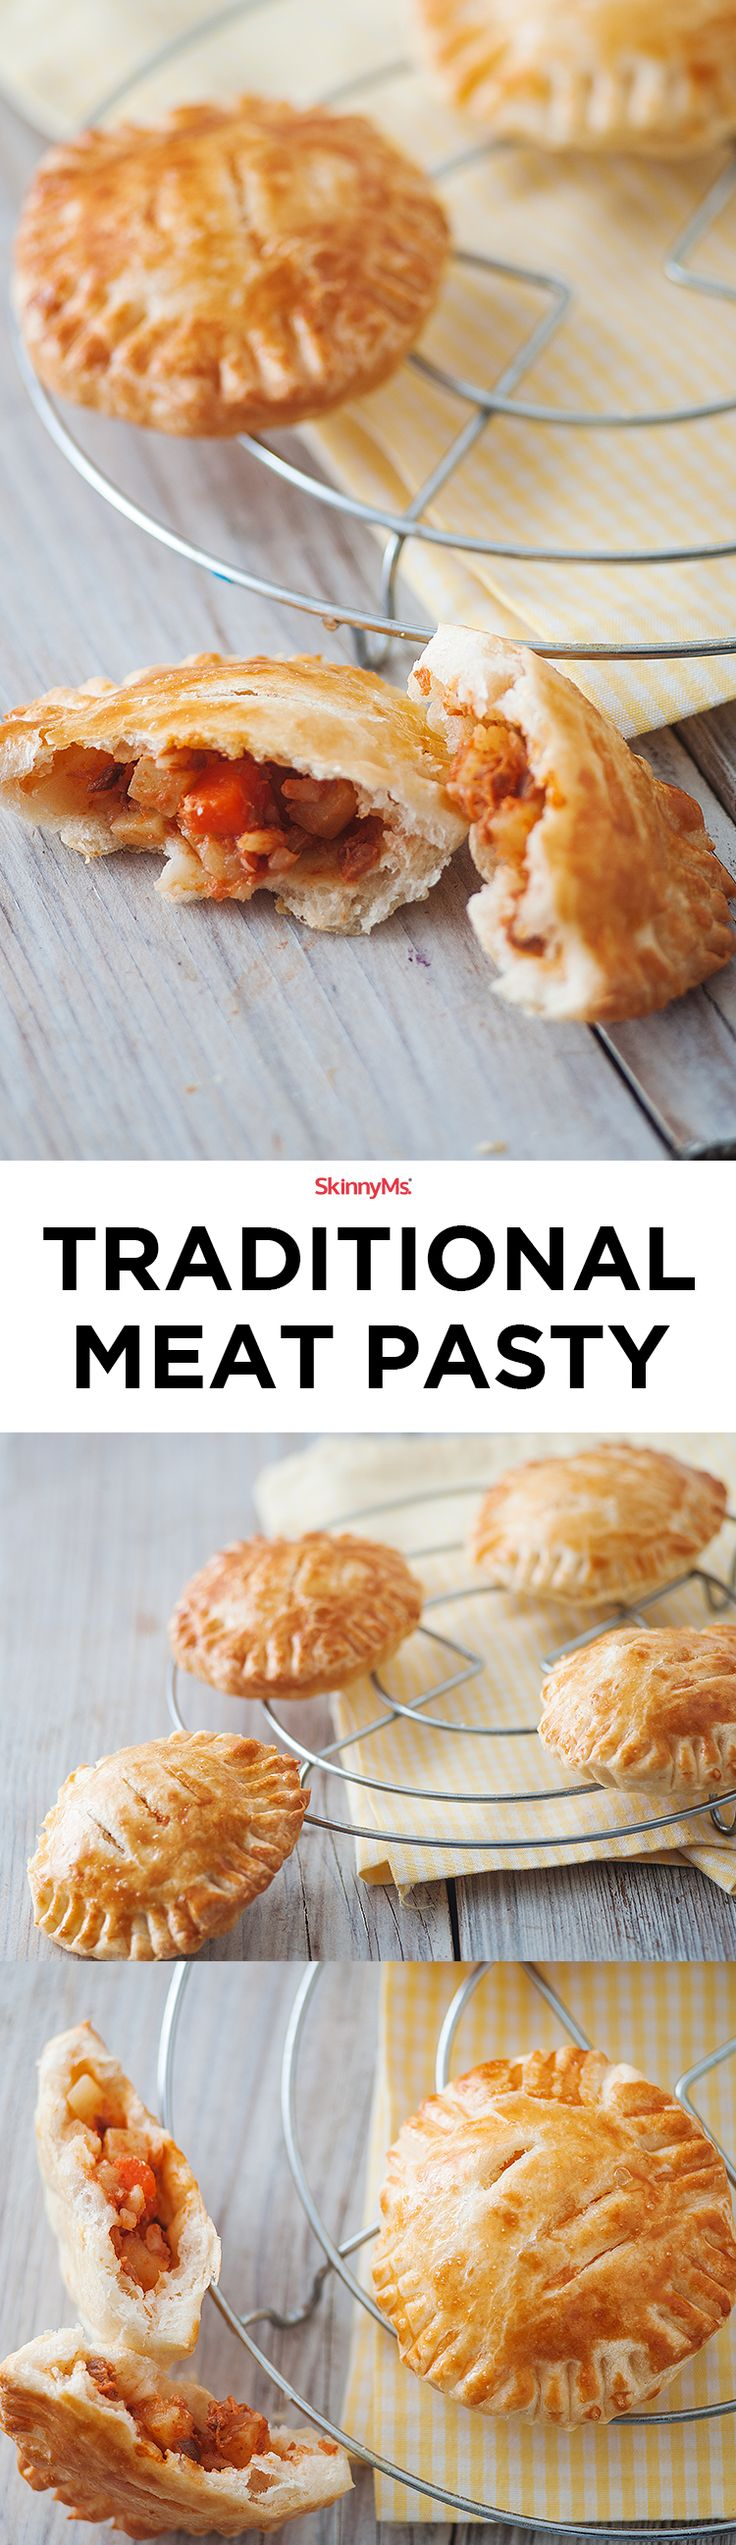 Our Traditional Meat Pasty is made with lean beef and a mix of root veggies.